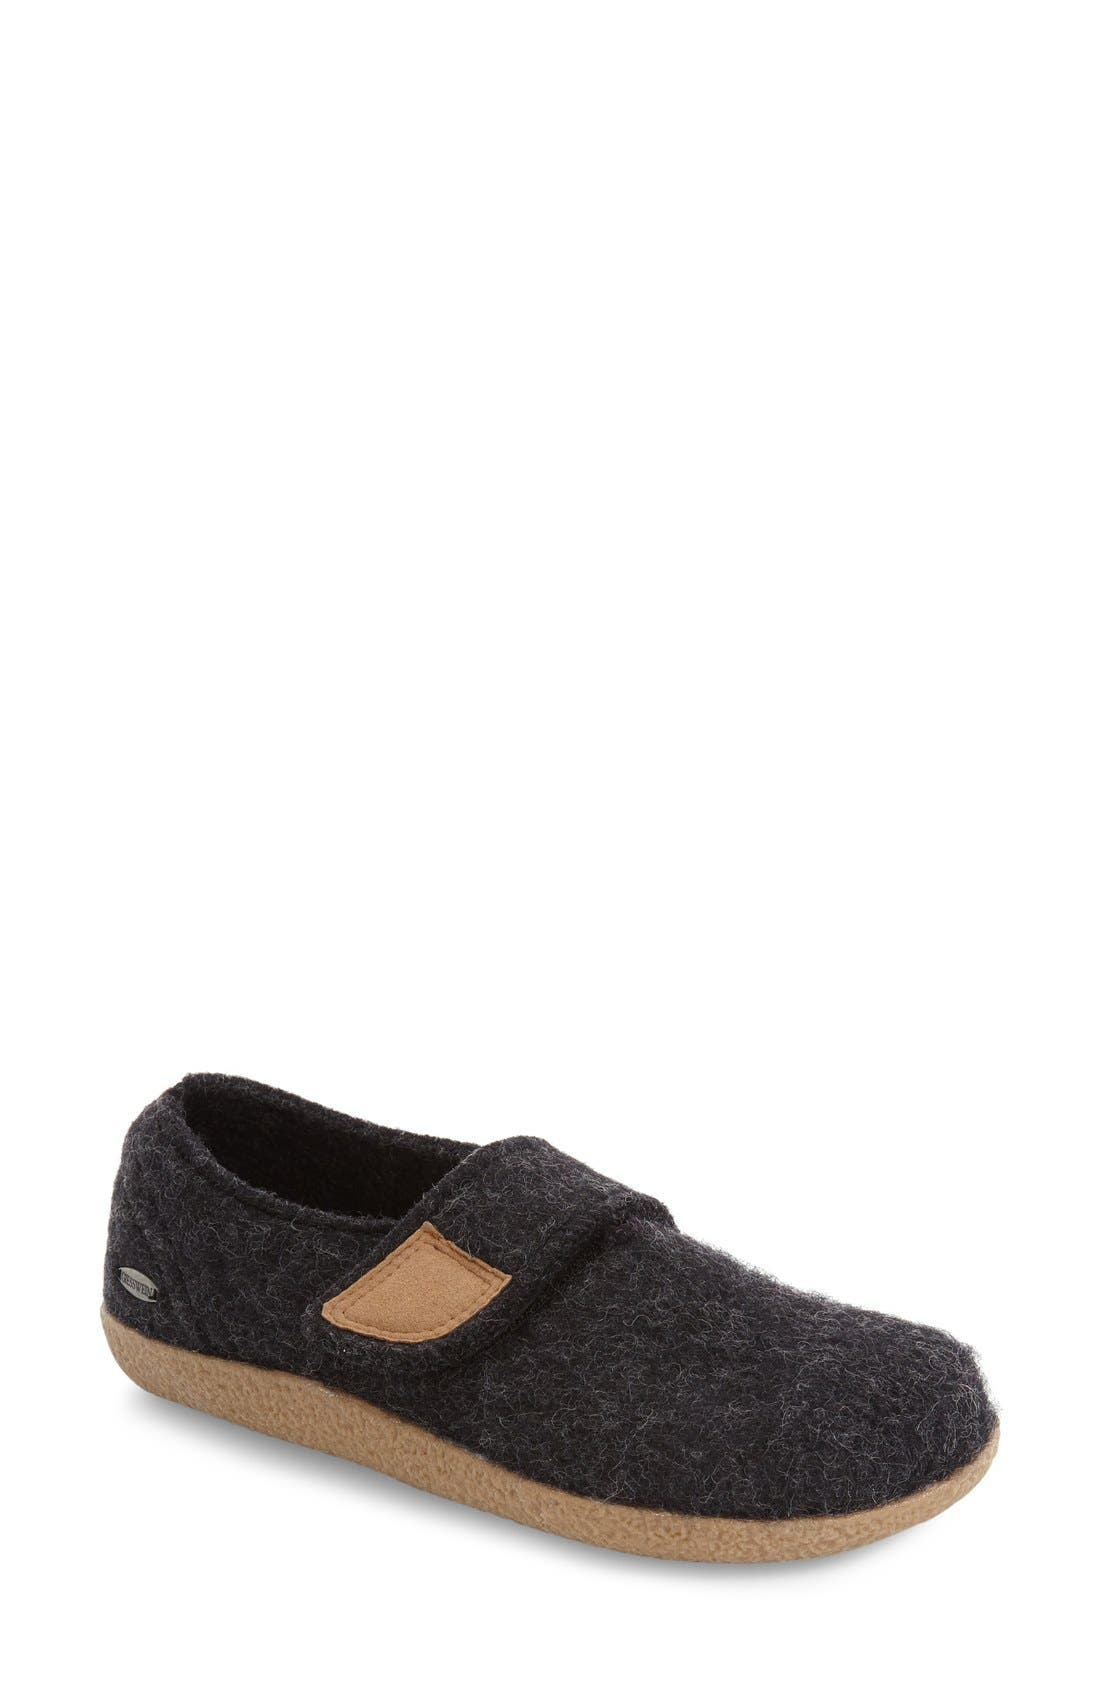 Camden Water Repellent Slipper,                         Main,                         color, Charcoal Wool